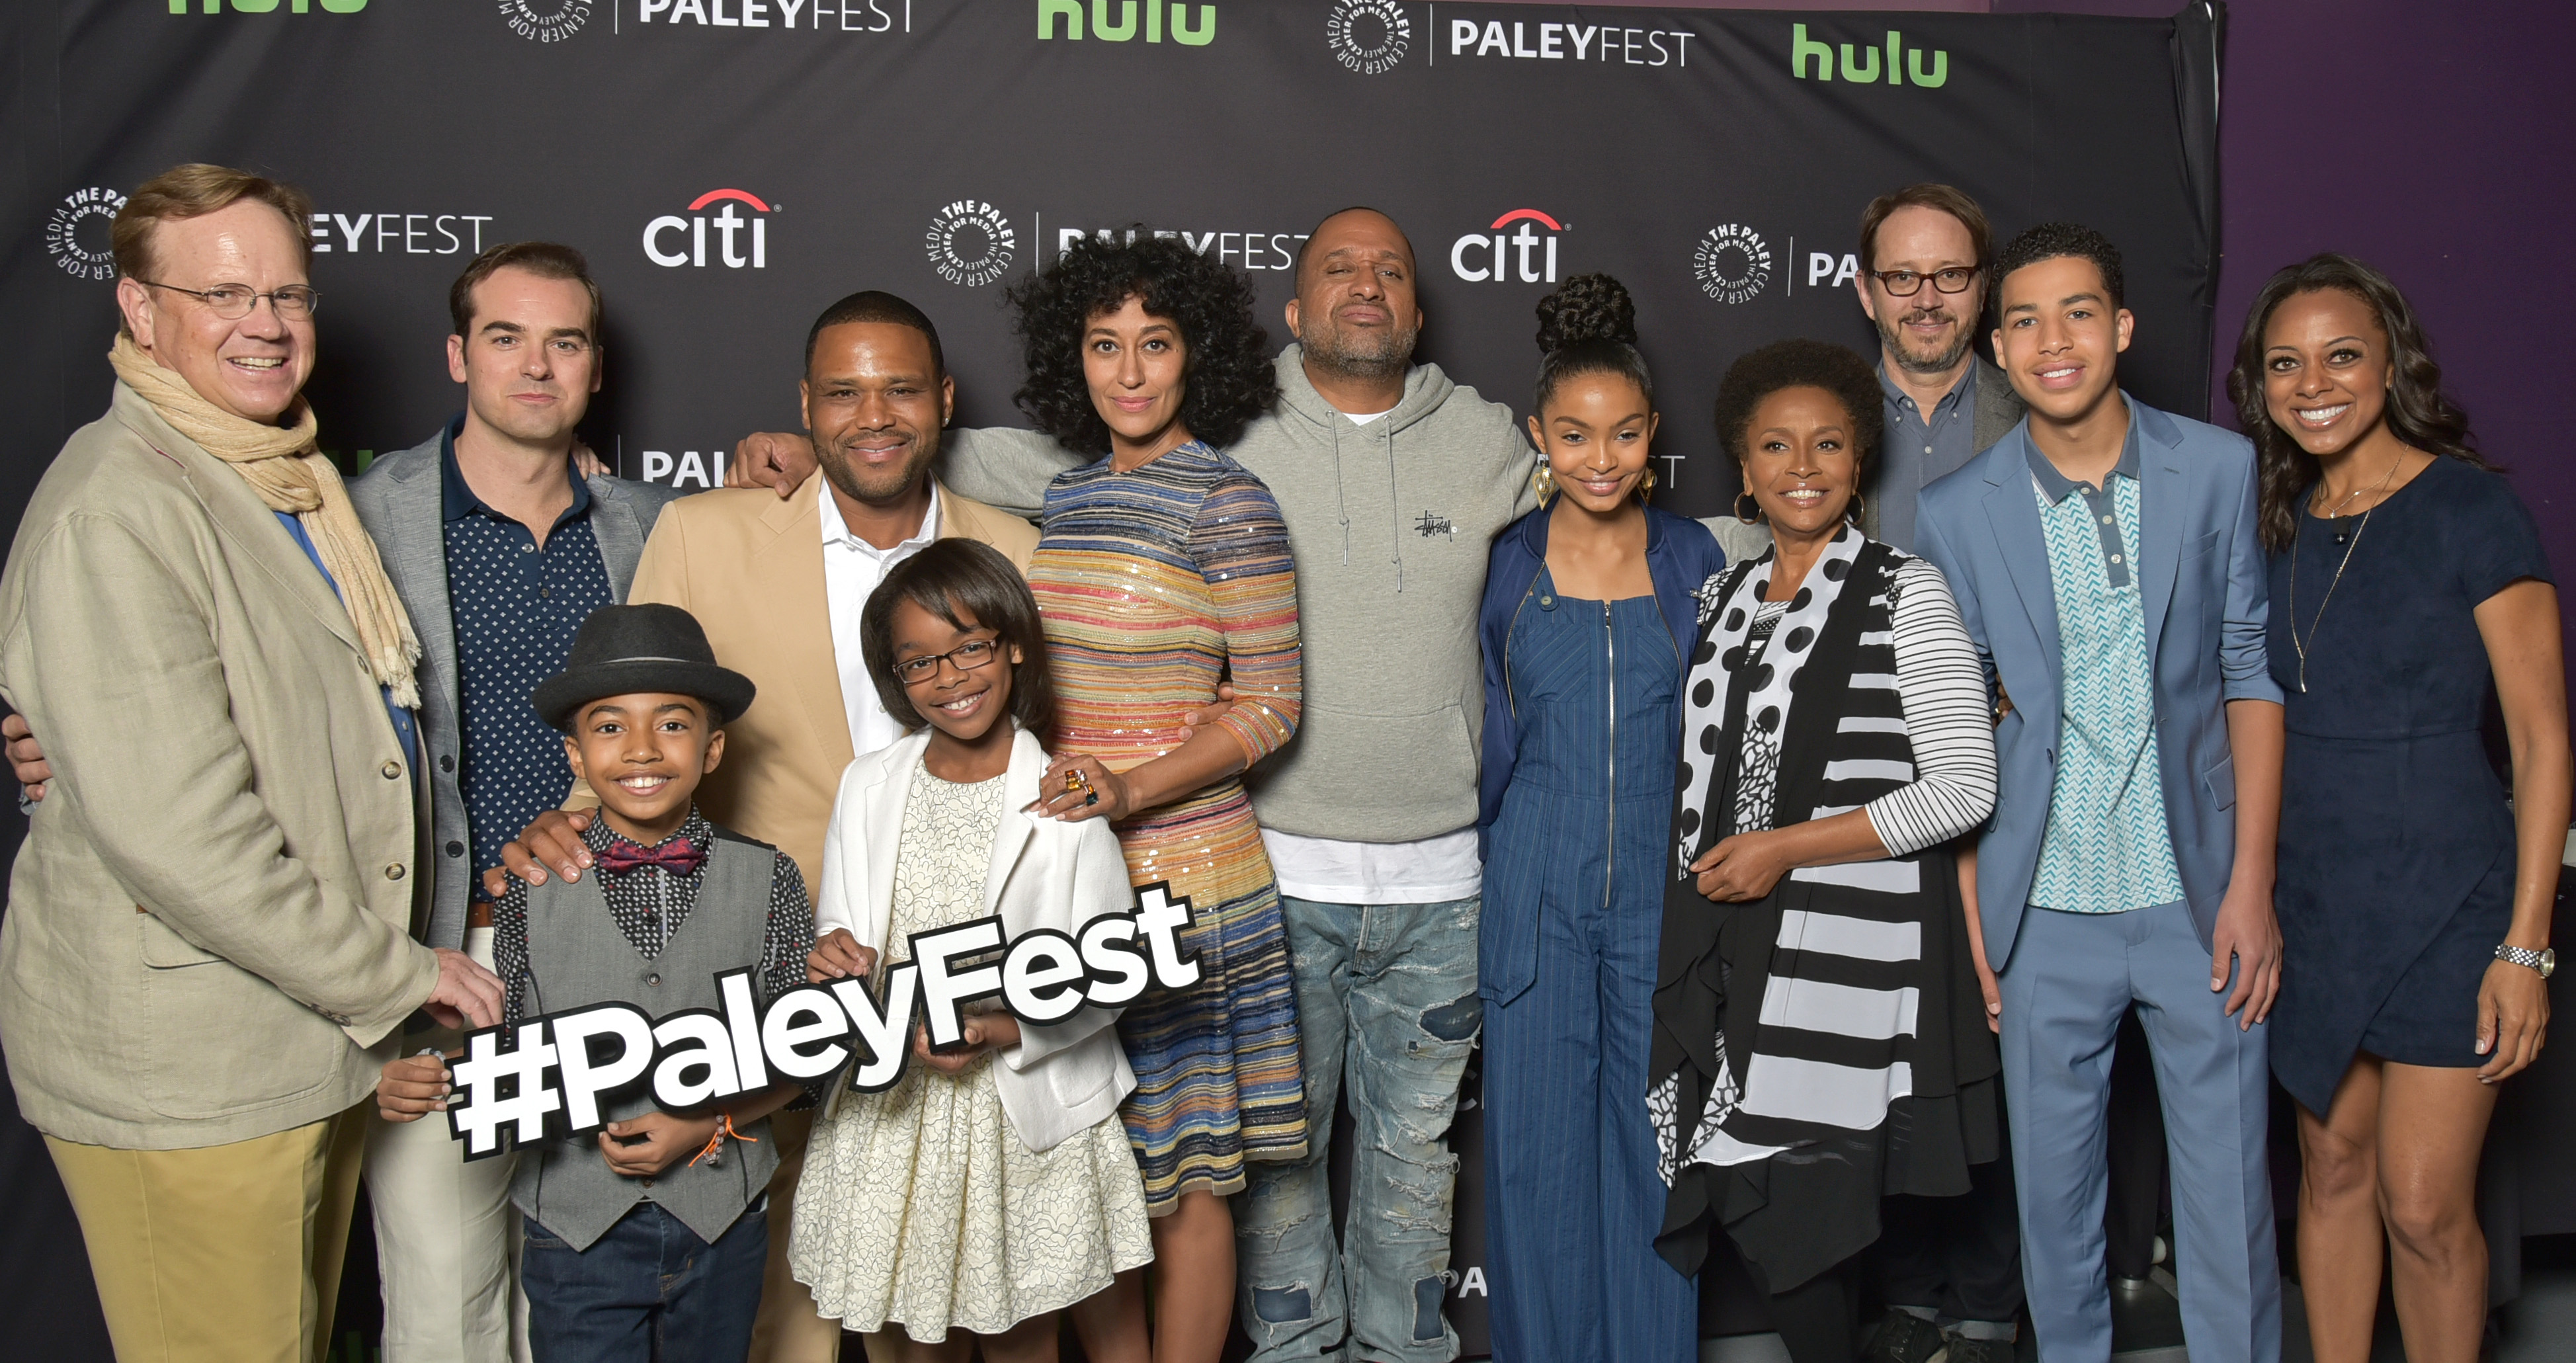 paleyfest is talking blackish with the cast team cherry the geek